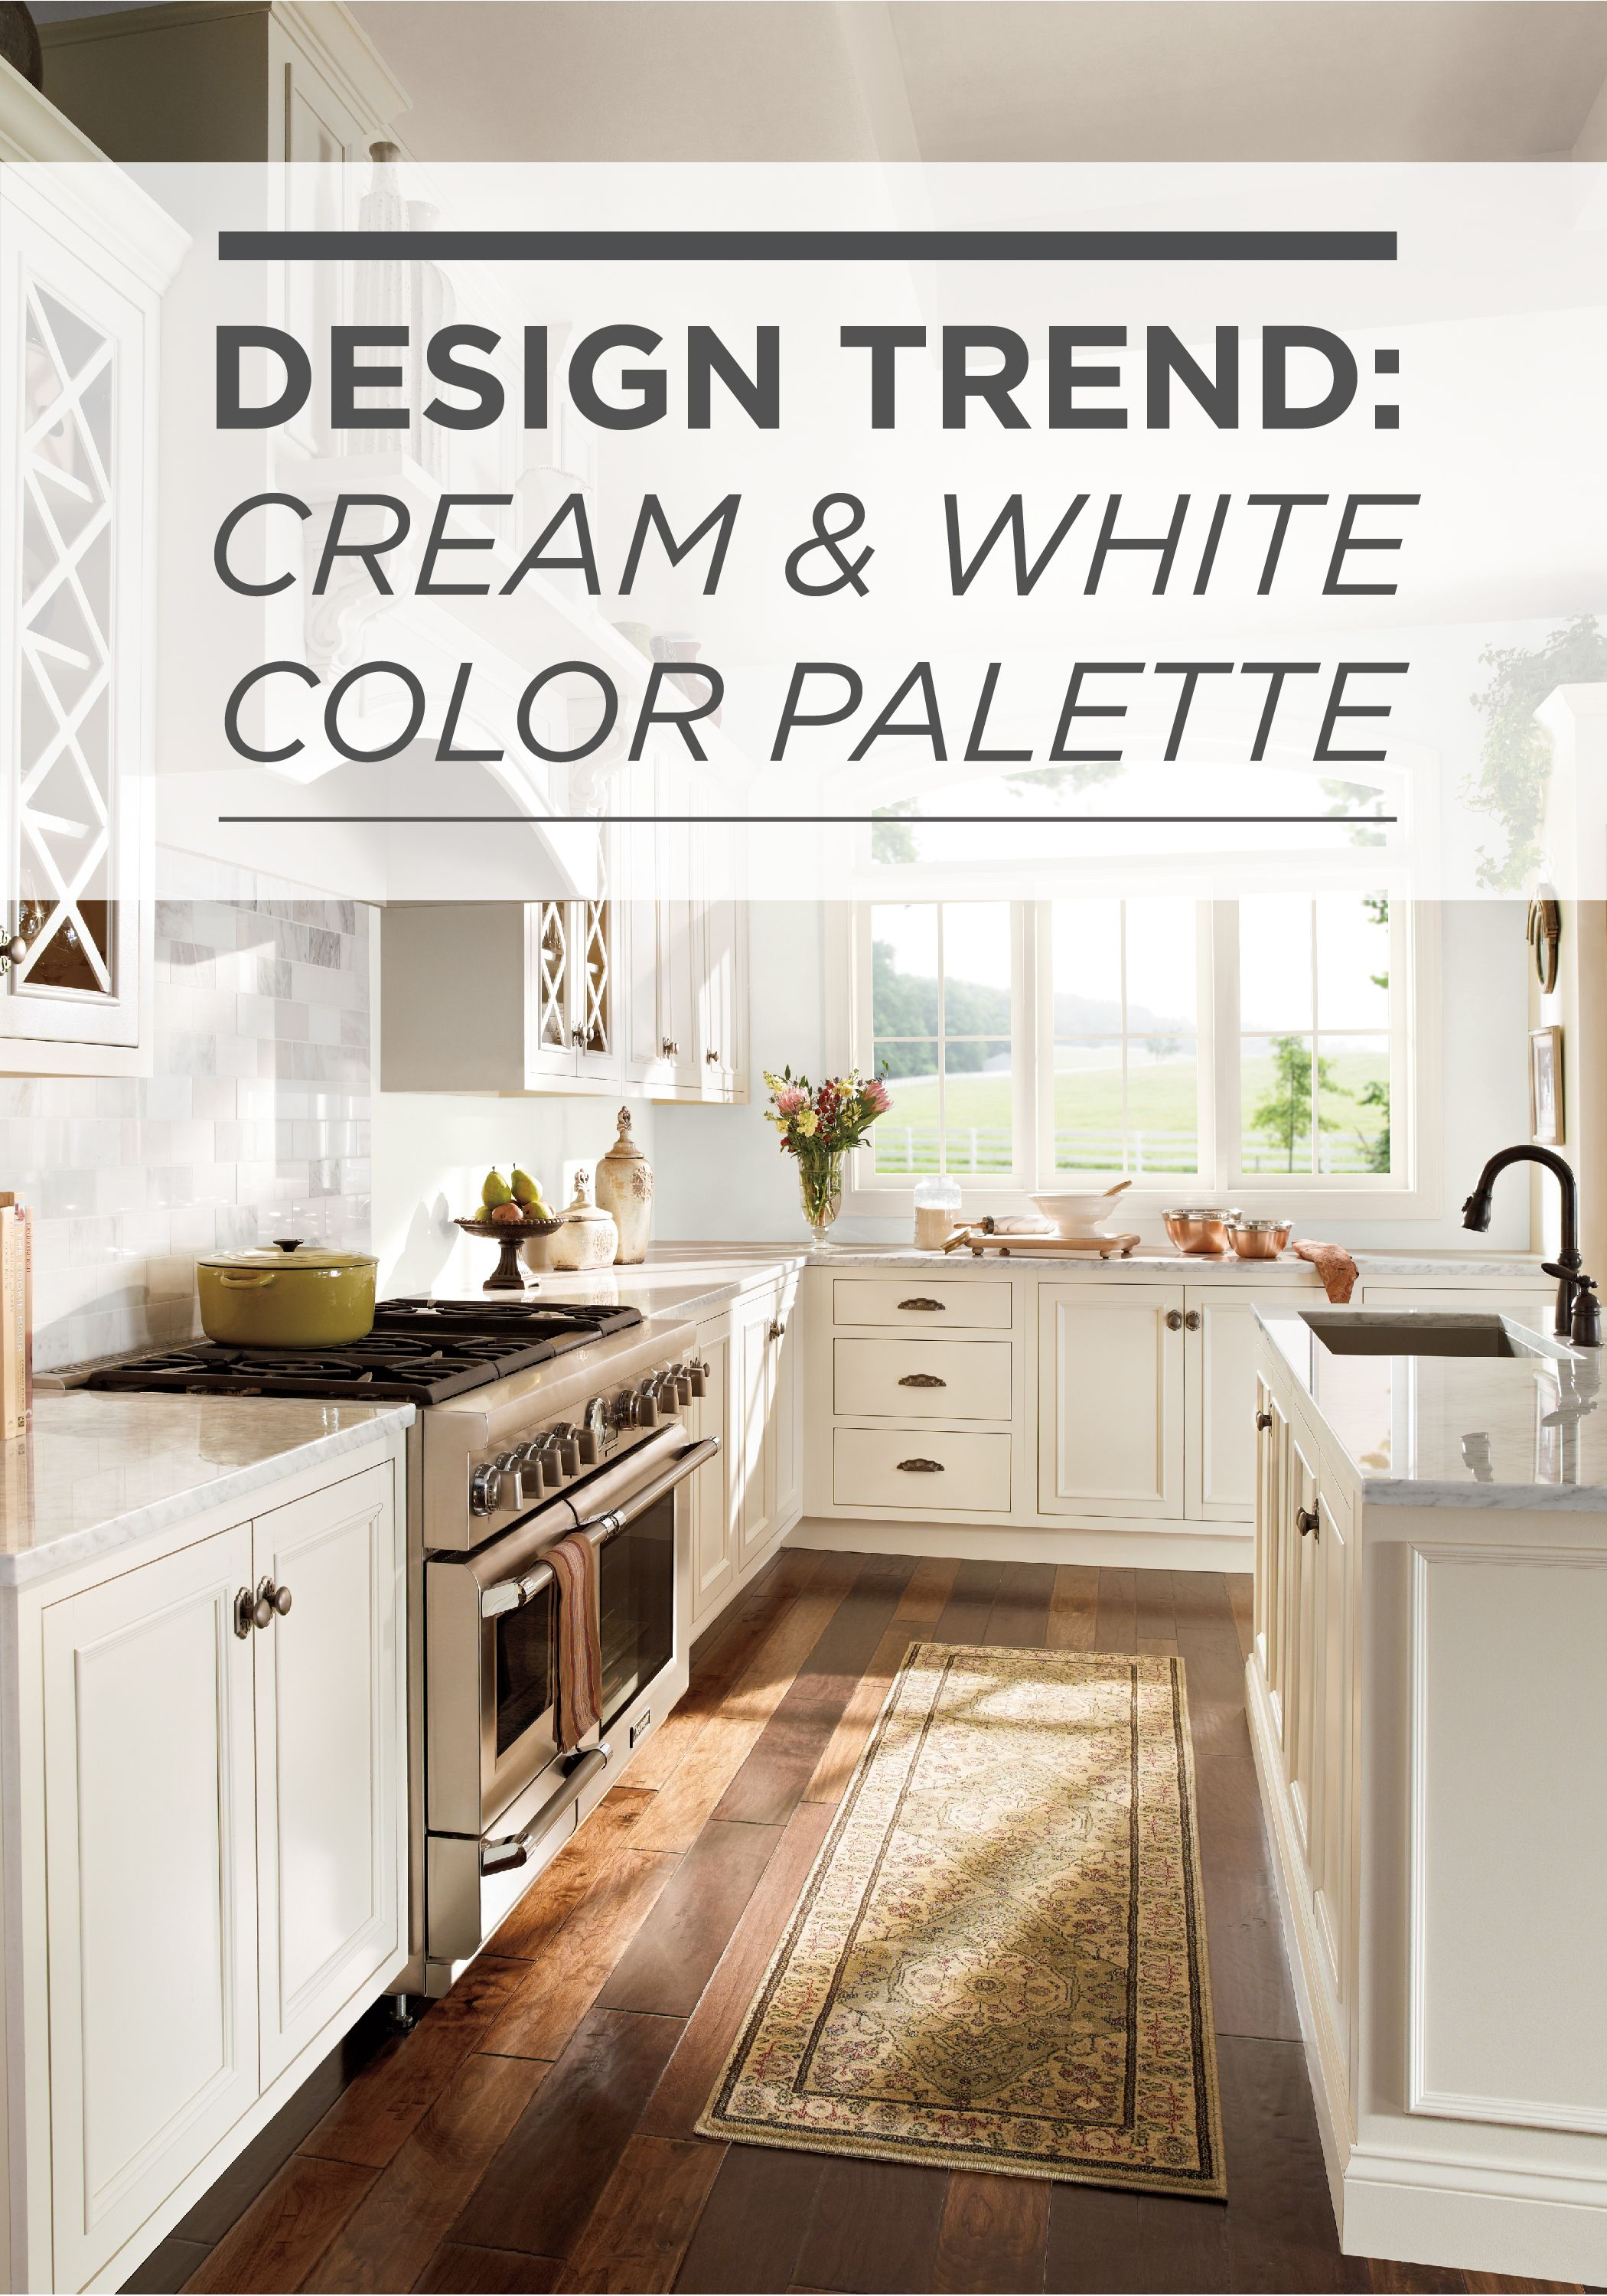 Staying up to date on design trends can help bring fresh light into